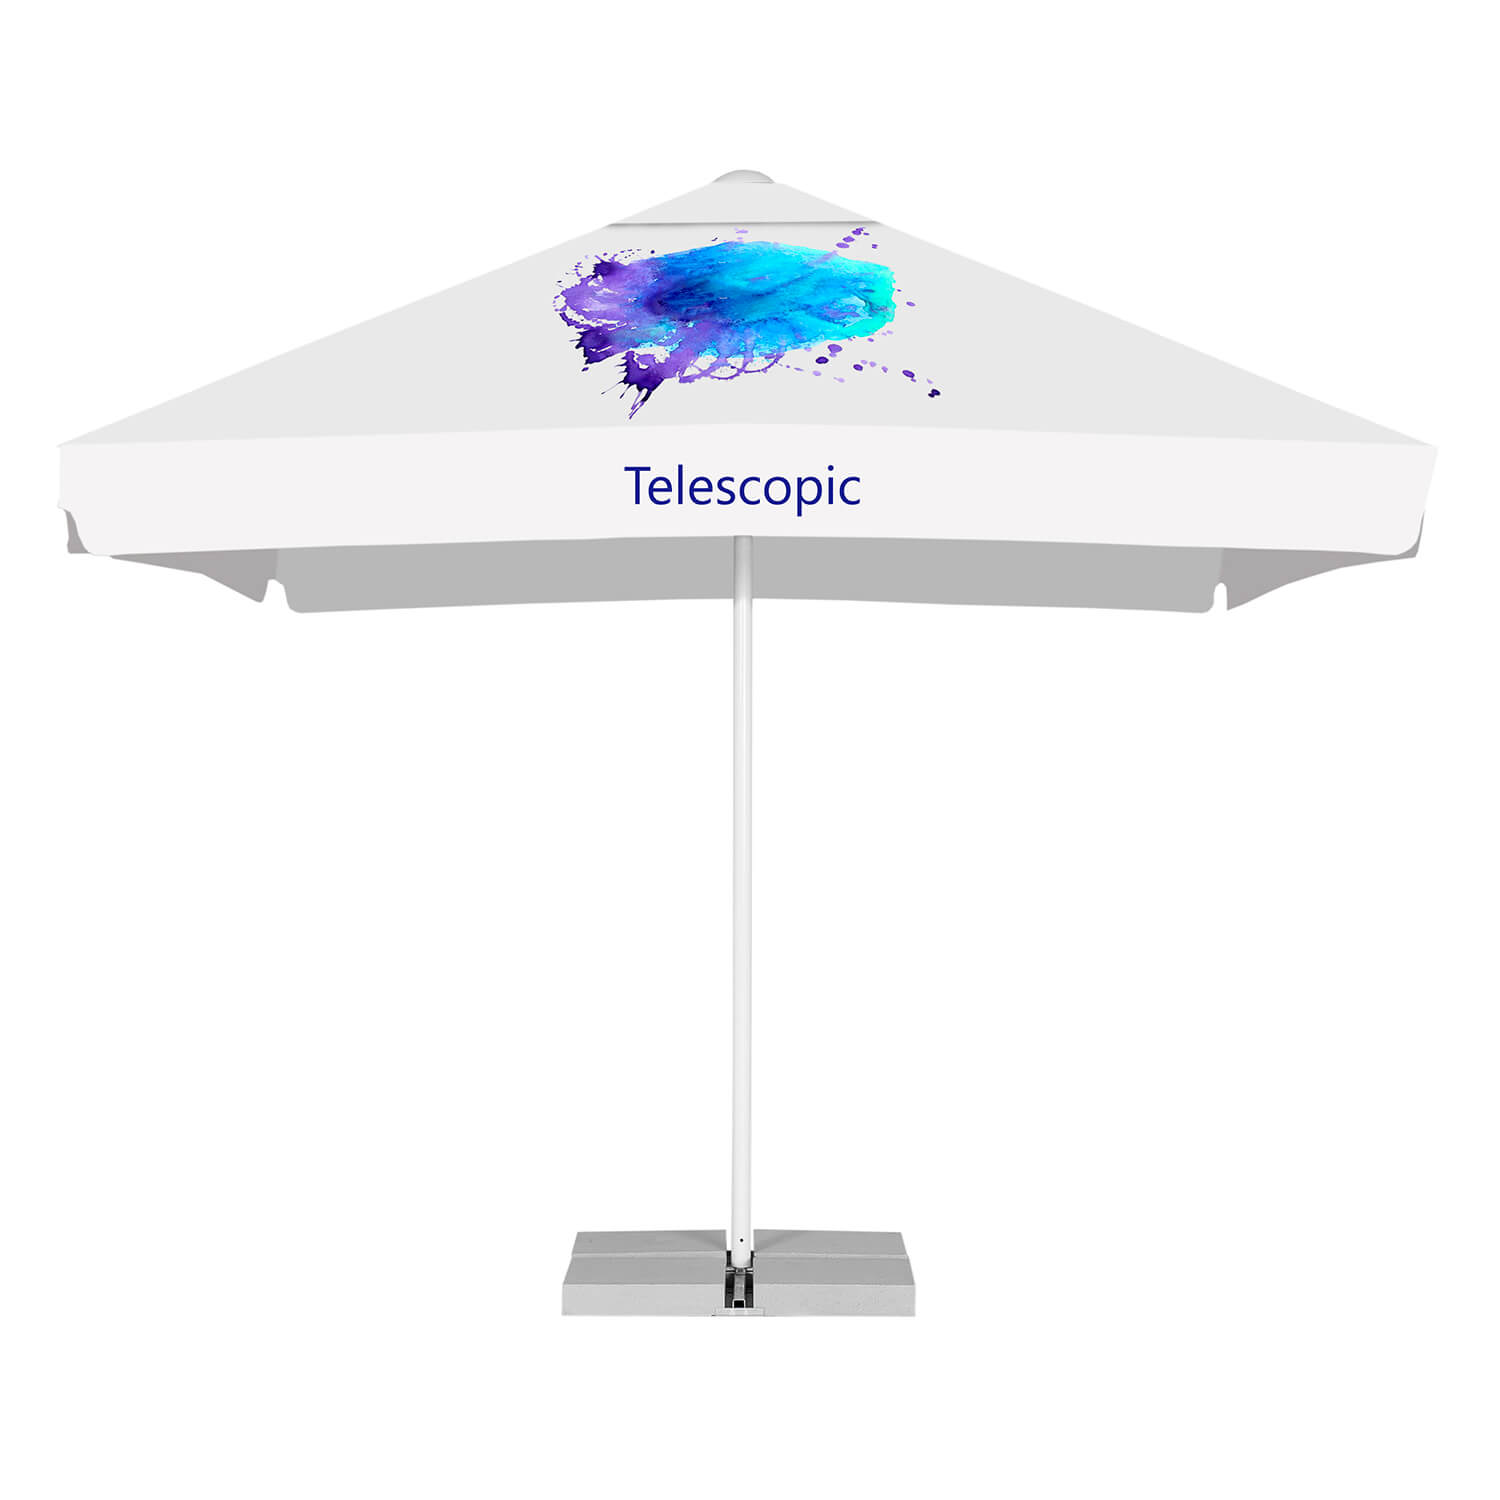 6. Telescopic advertising parasols